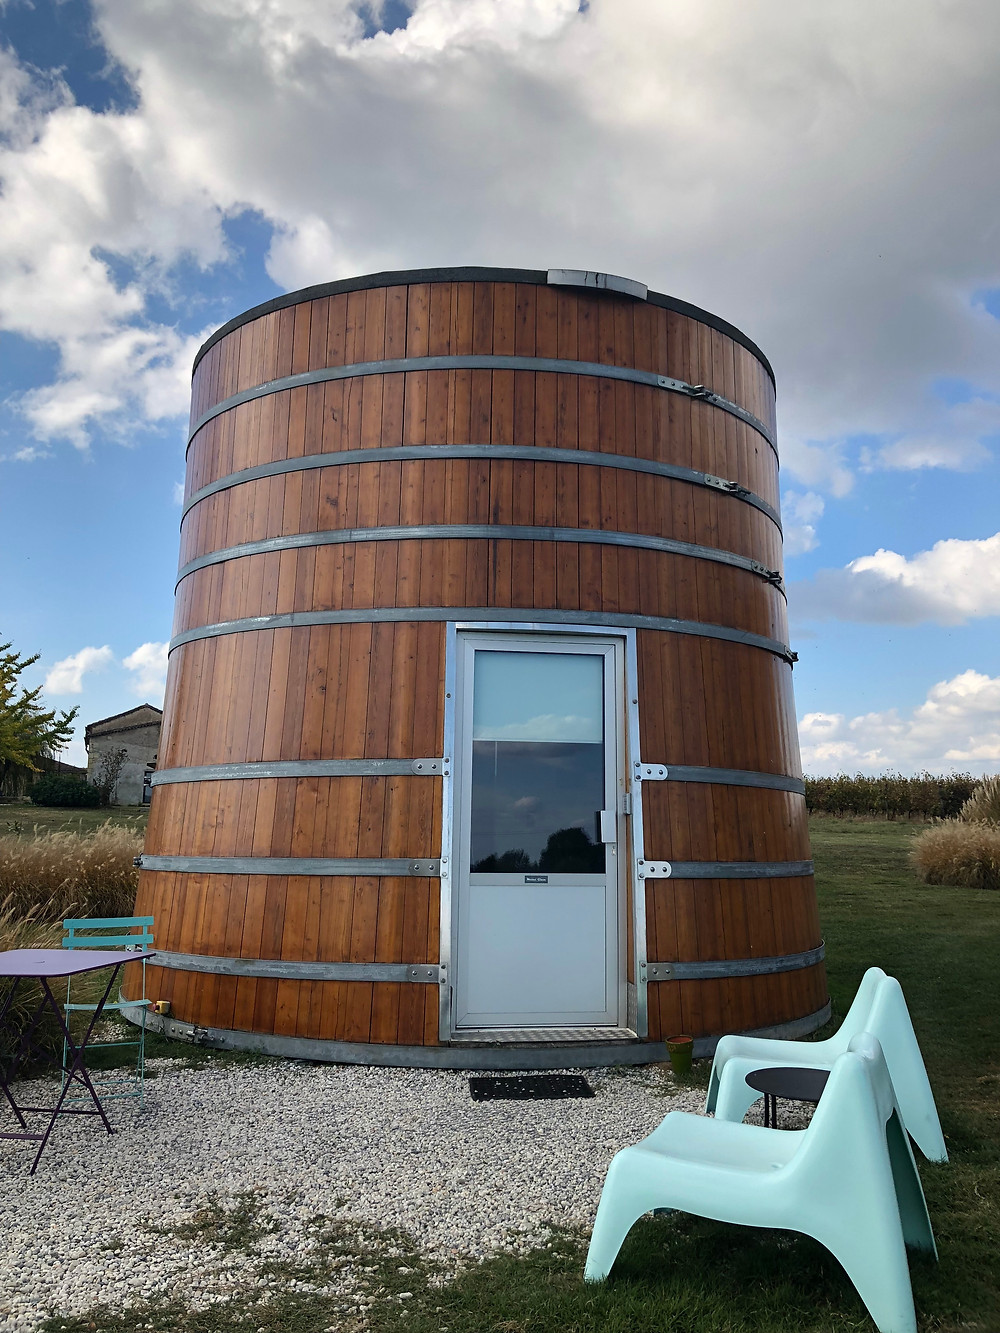 Did you know you can sleep in a wine barrel?